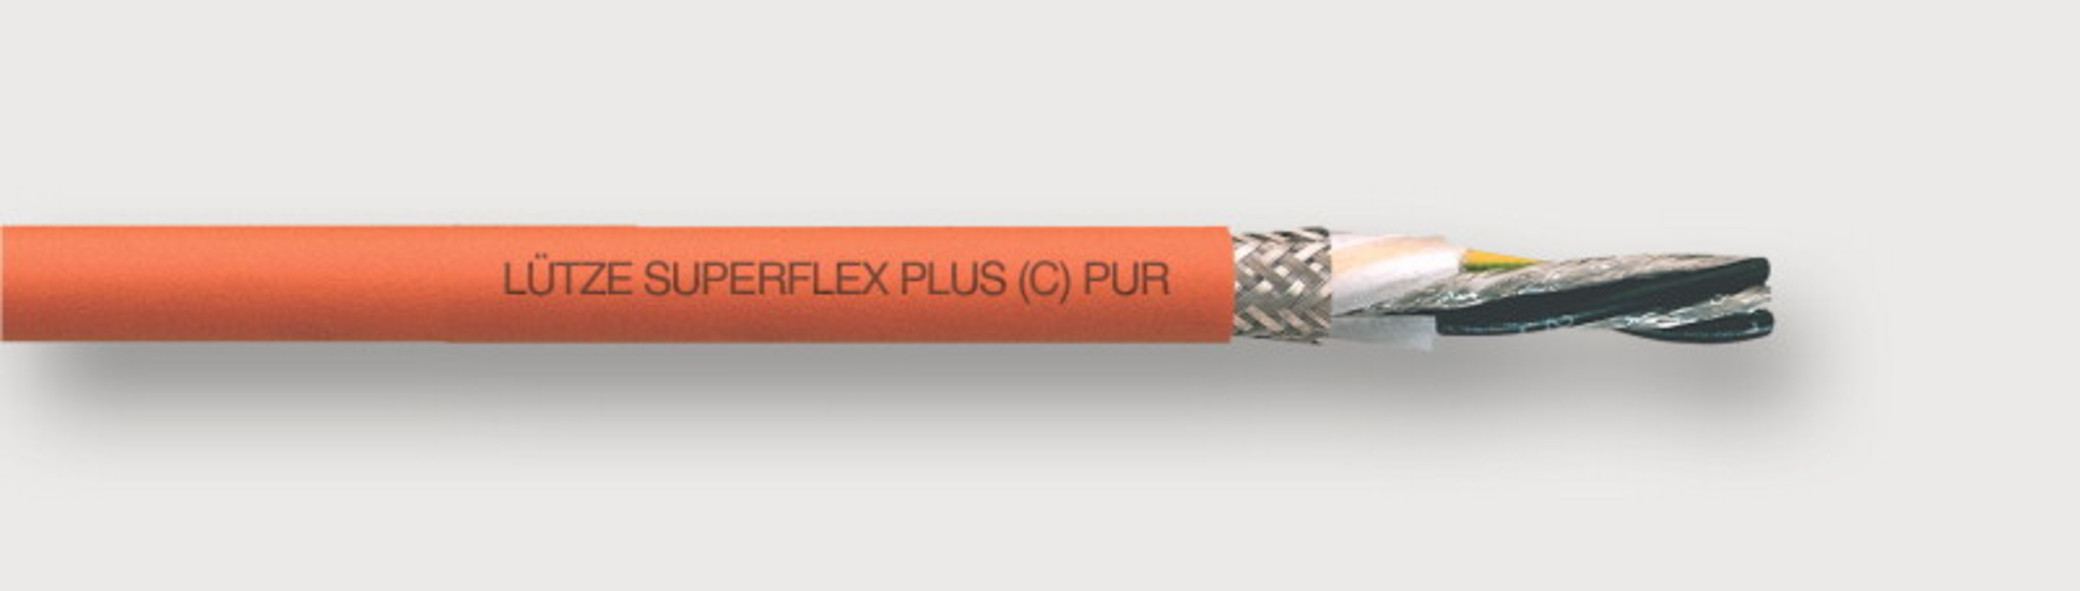 111464 - LÜTZE SUPERFLEX® PLUS M (C) PUR SERVO 0.6/1 kV High Flexing Motor Cable for Siemens and other systems For highest requirements